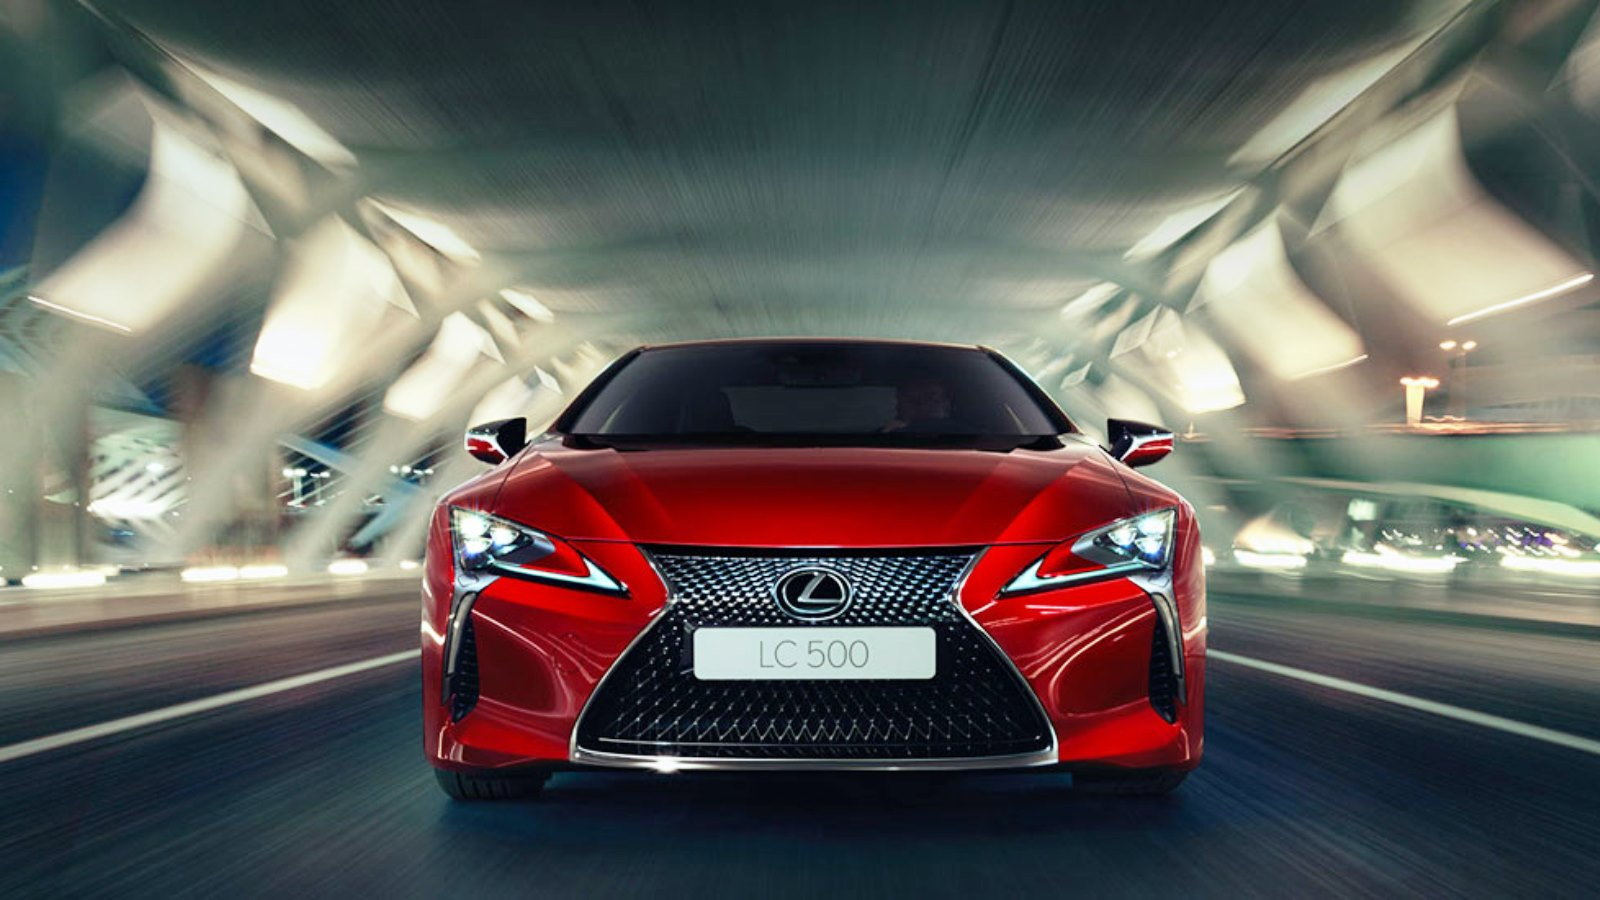 The Lexus LC 500 - Coming Soon